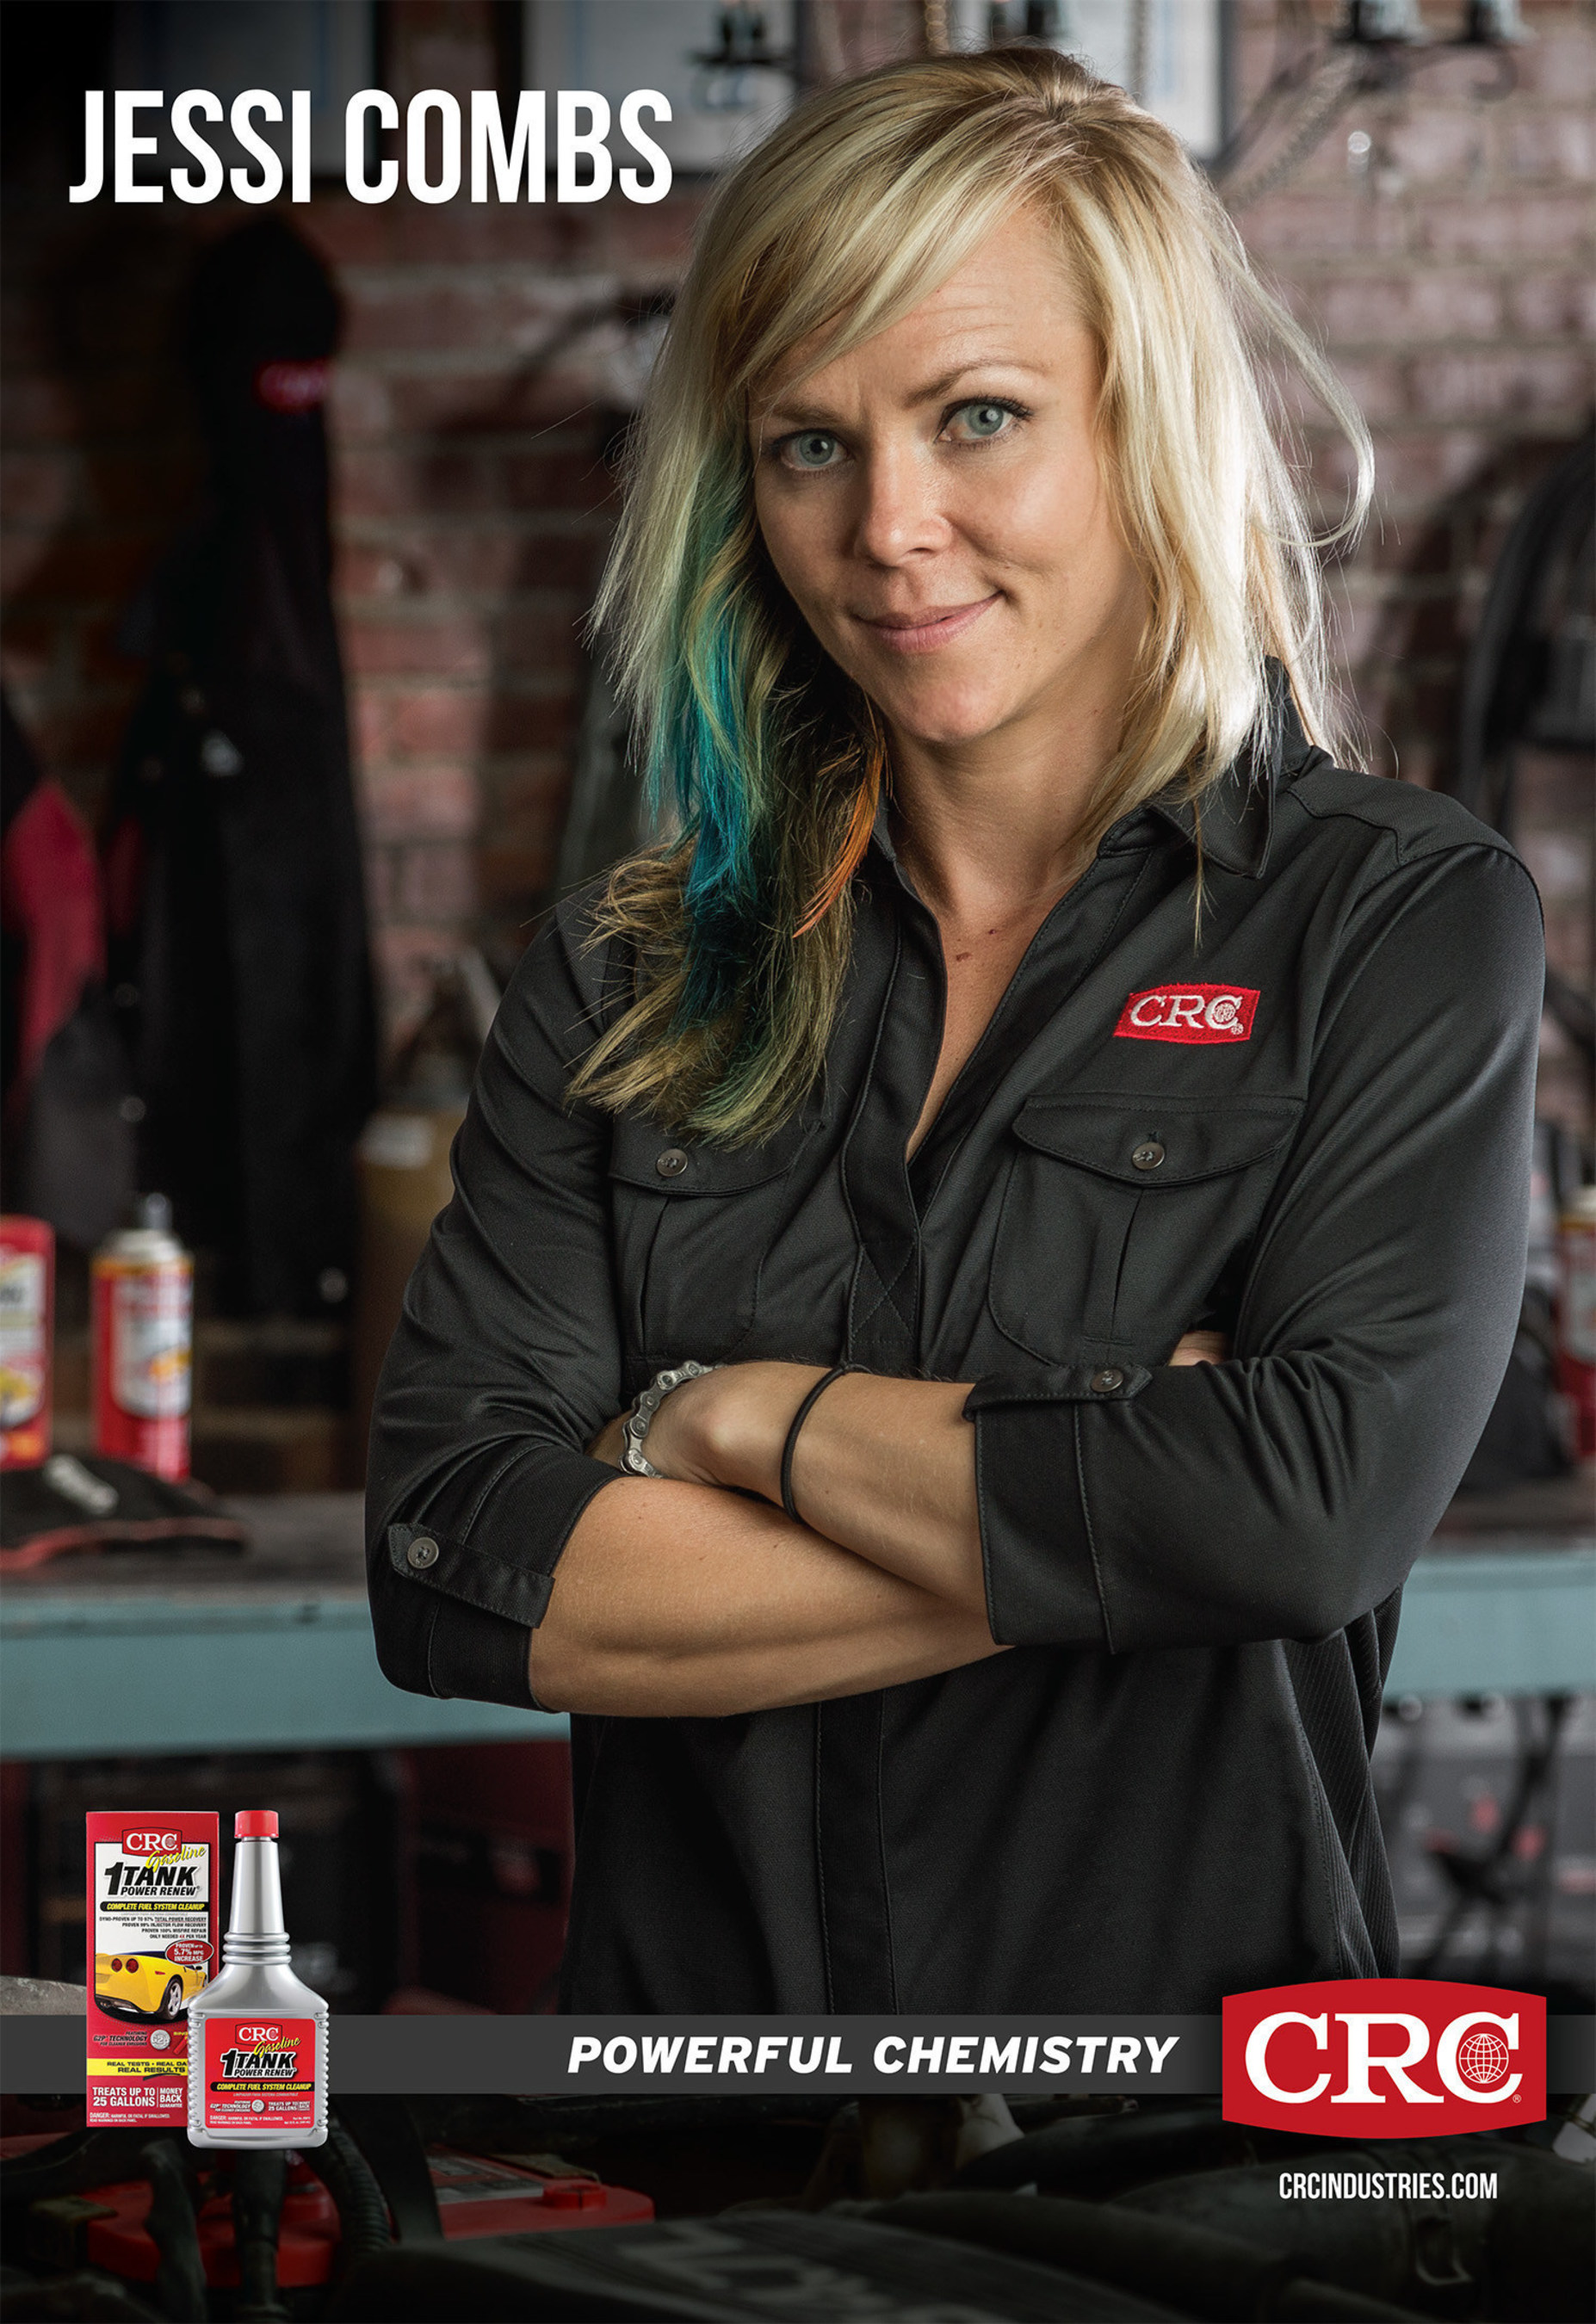 Racing Personality and CRC Ambassador, Jessi Combs, to Greet Fans at